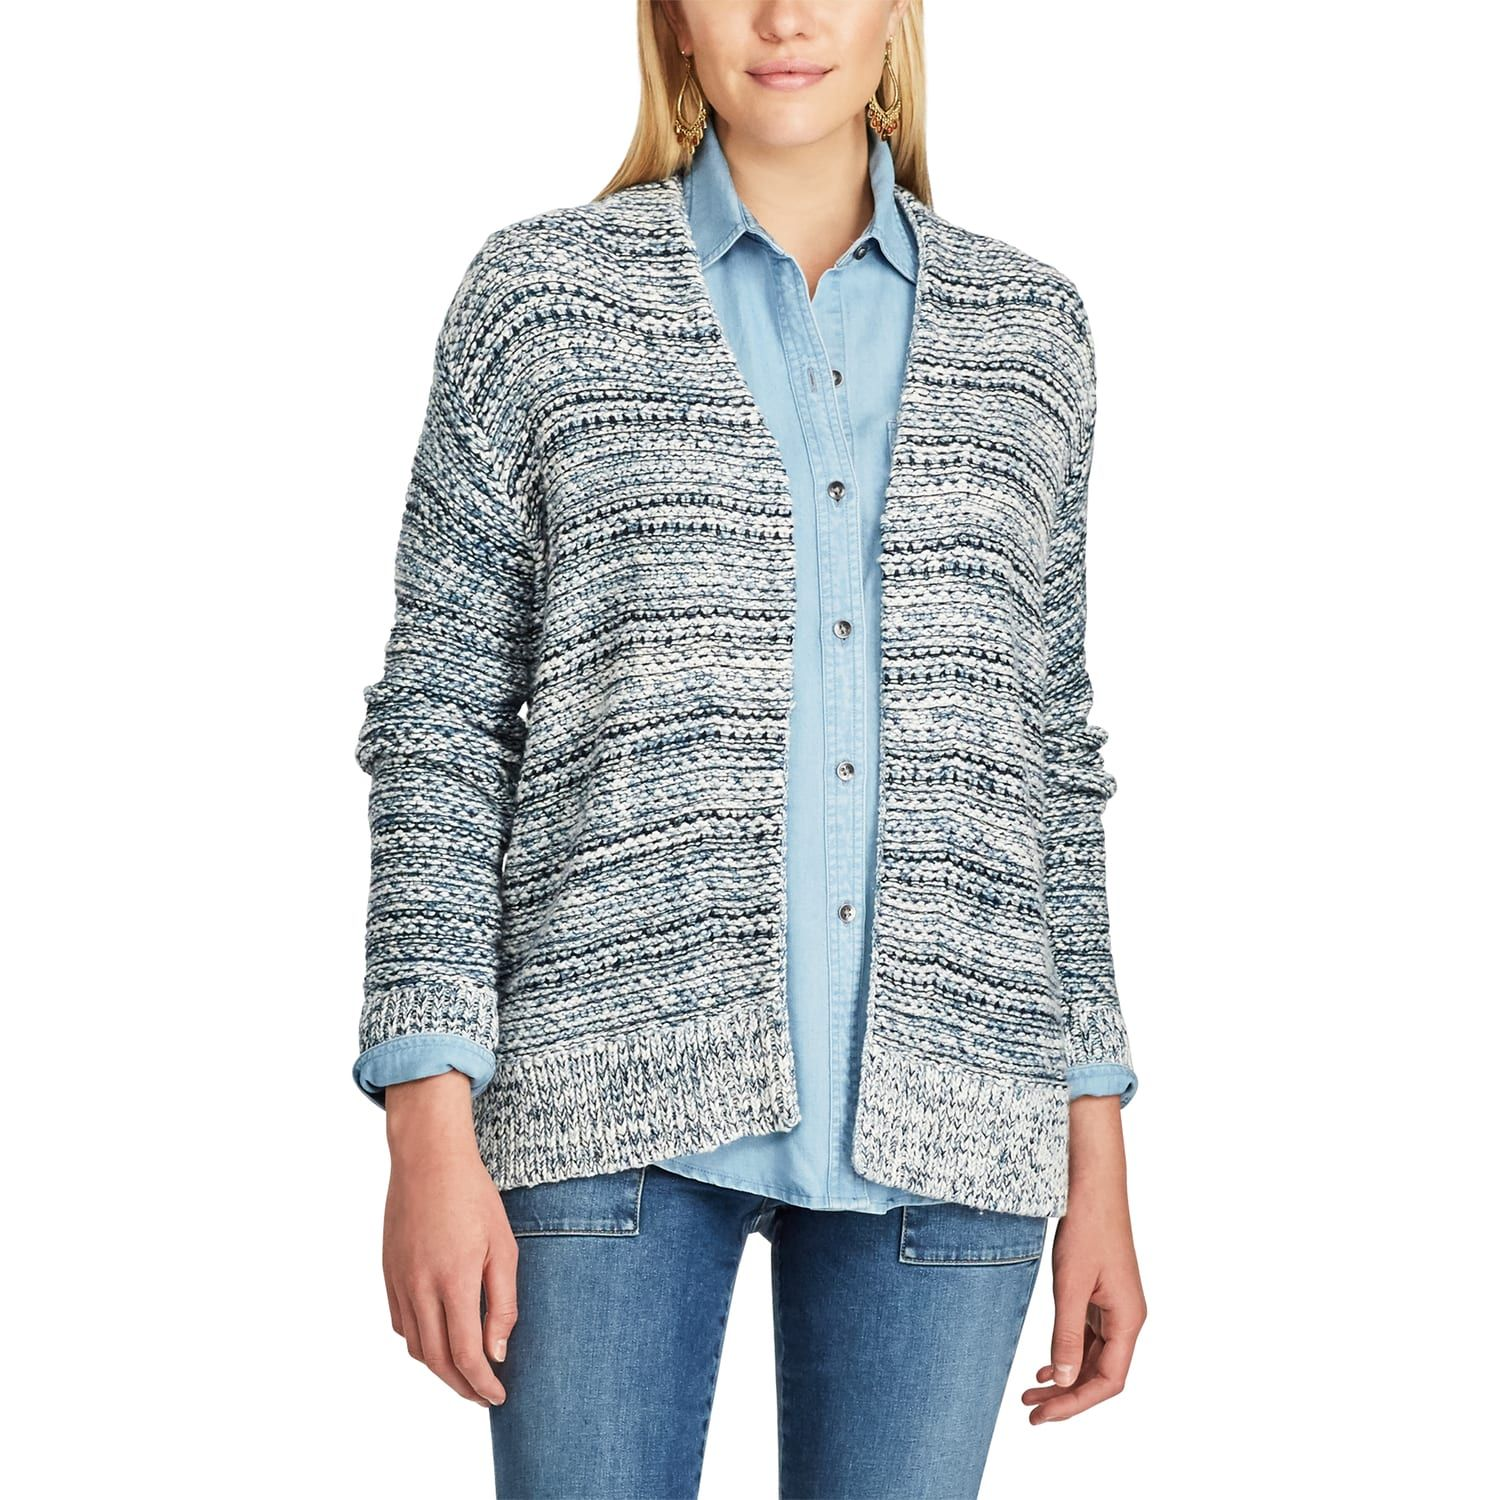 Women's Chaps Marled Open Front Cardigan | Marled cardigan